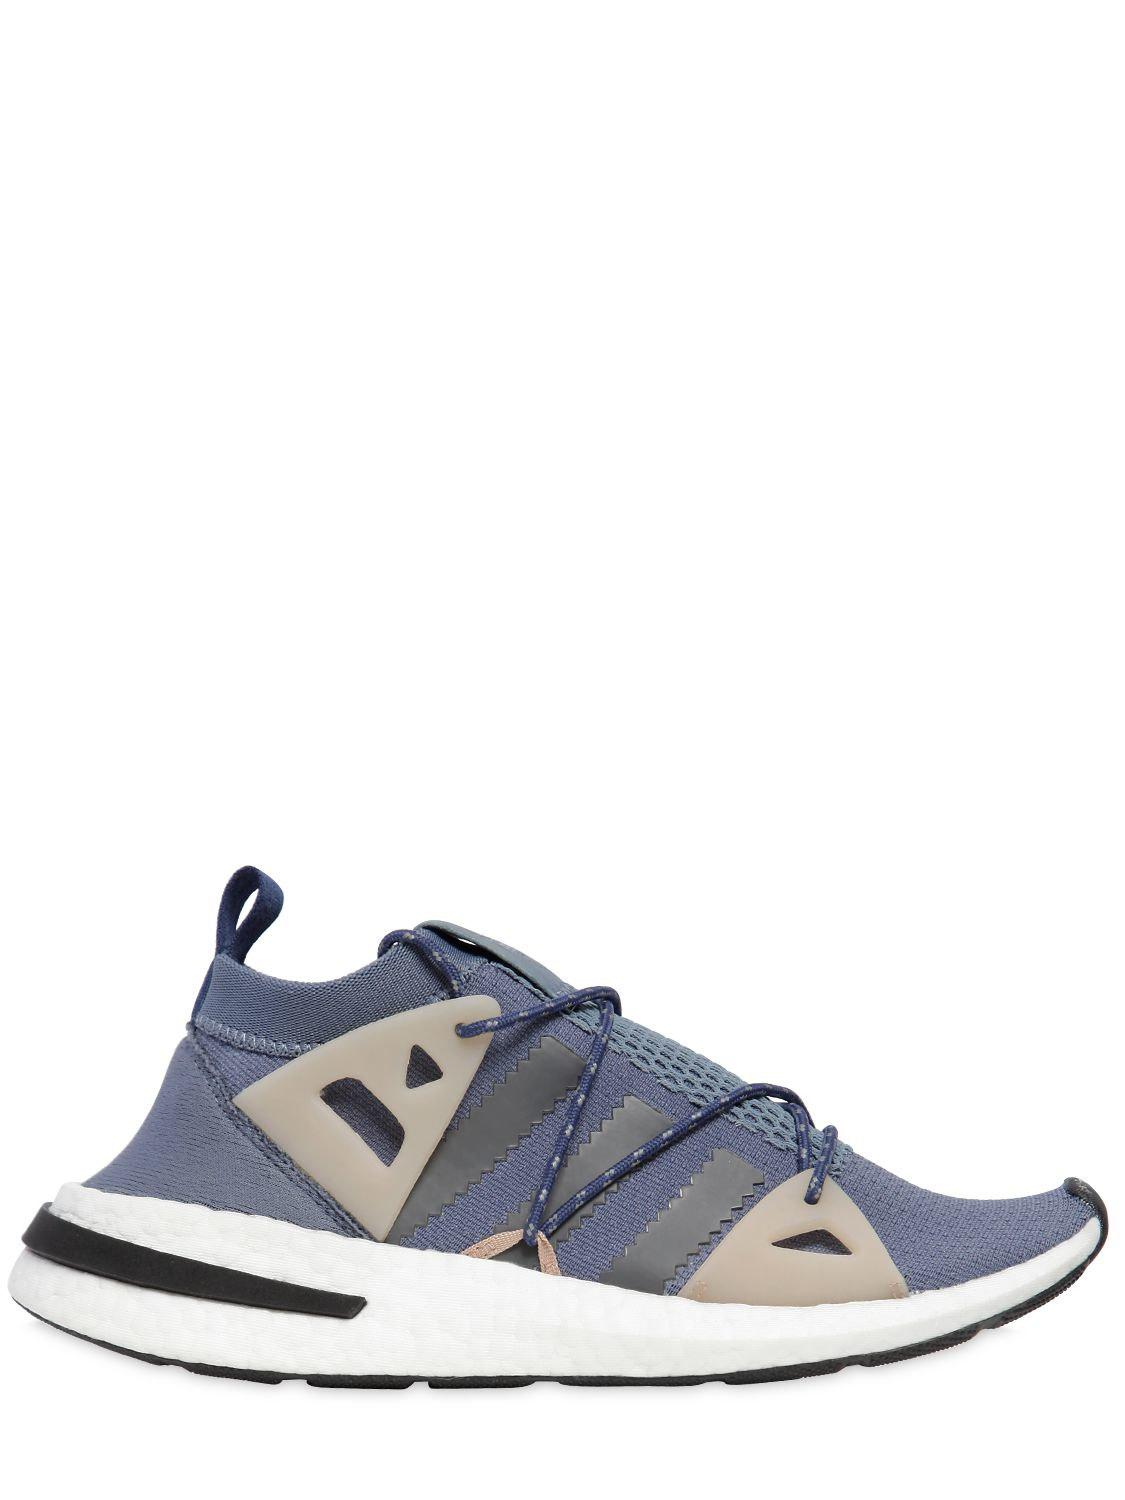 Arkyn Suede-trimmed Mesh Sneakers - Blue adidas Originals